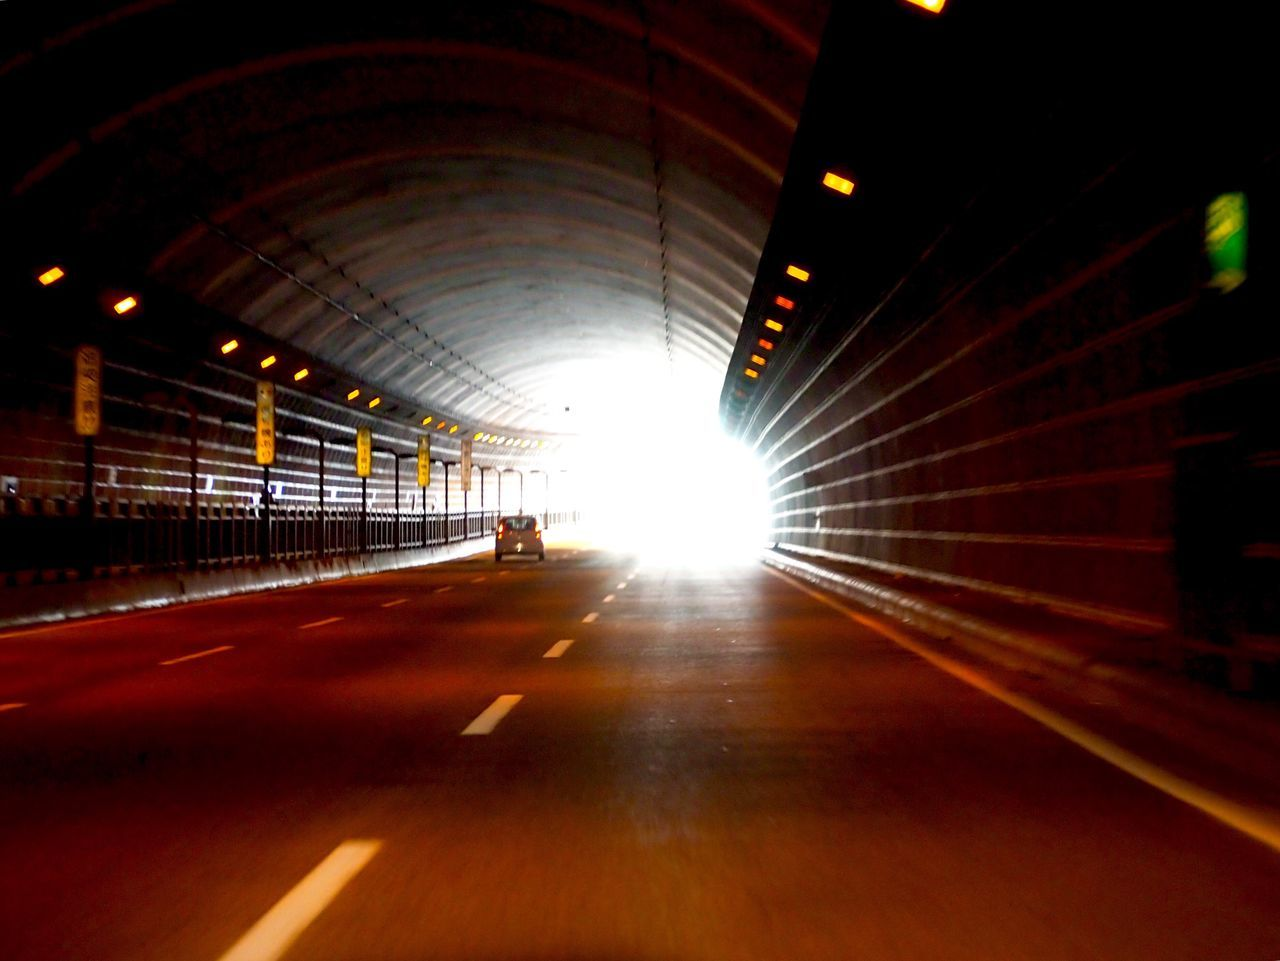 Tunnel Tunnel Vision Tunnel View Tunnel Of Light TunnelPorn Highway Transportation Illuminated Exit